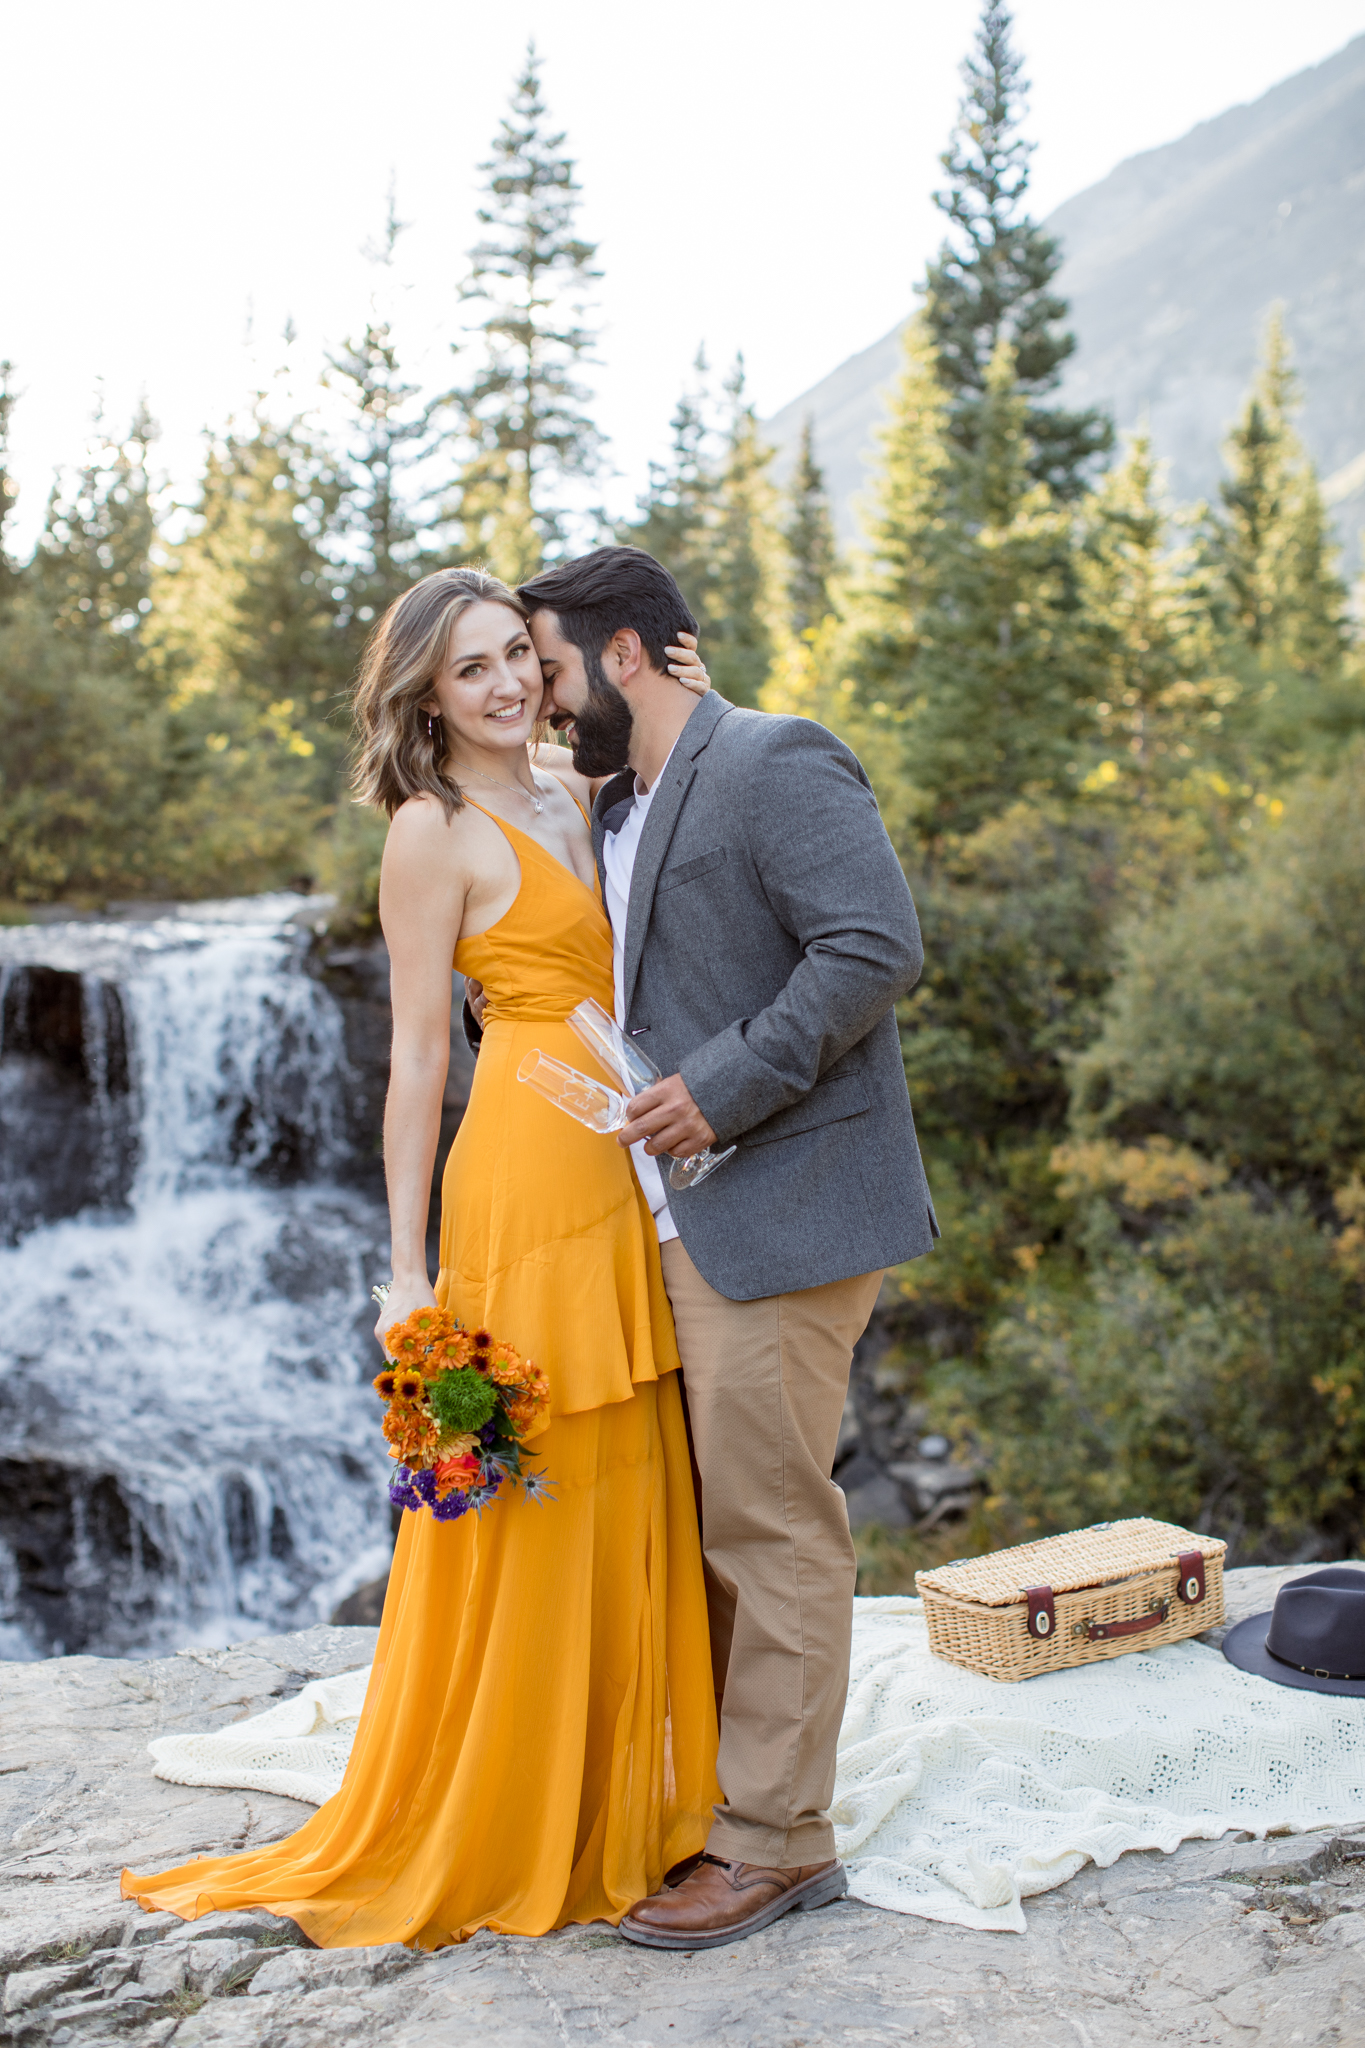 Outdoor Proposal Colorado Mountains